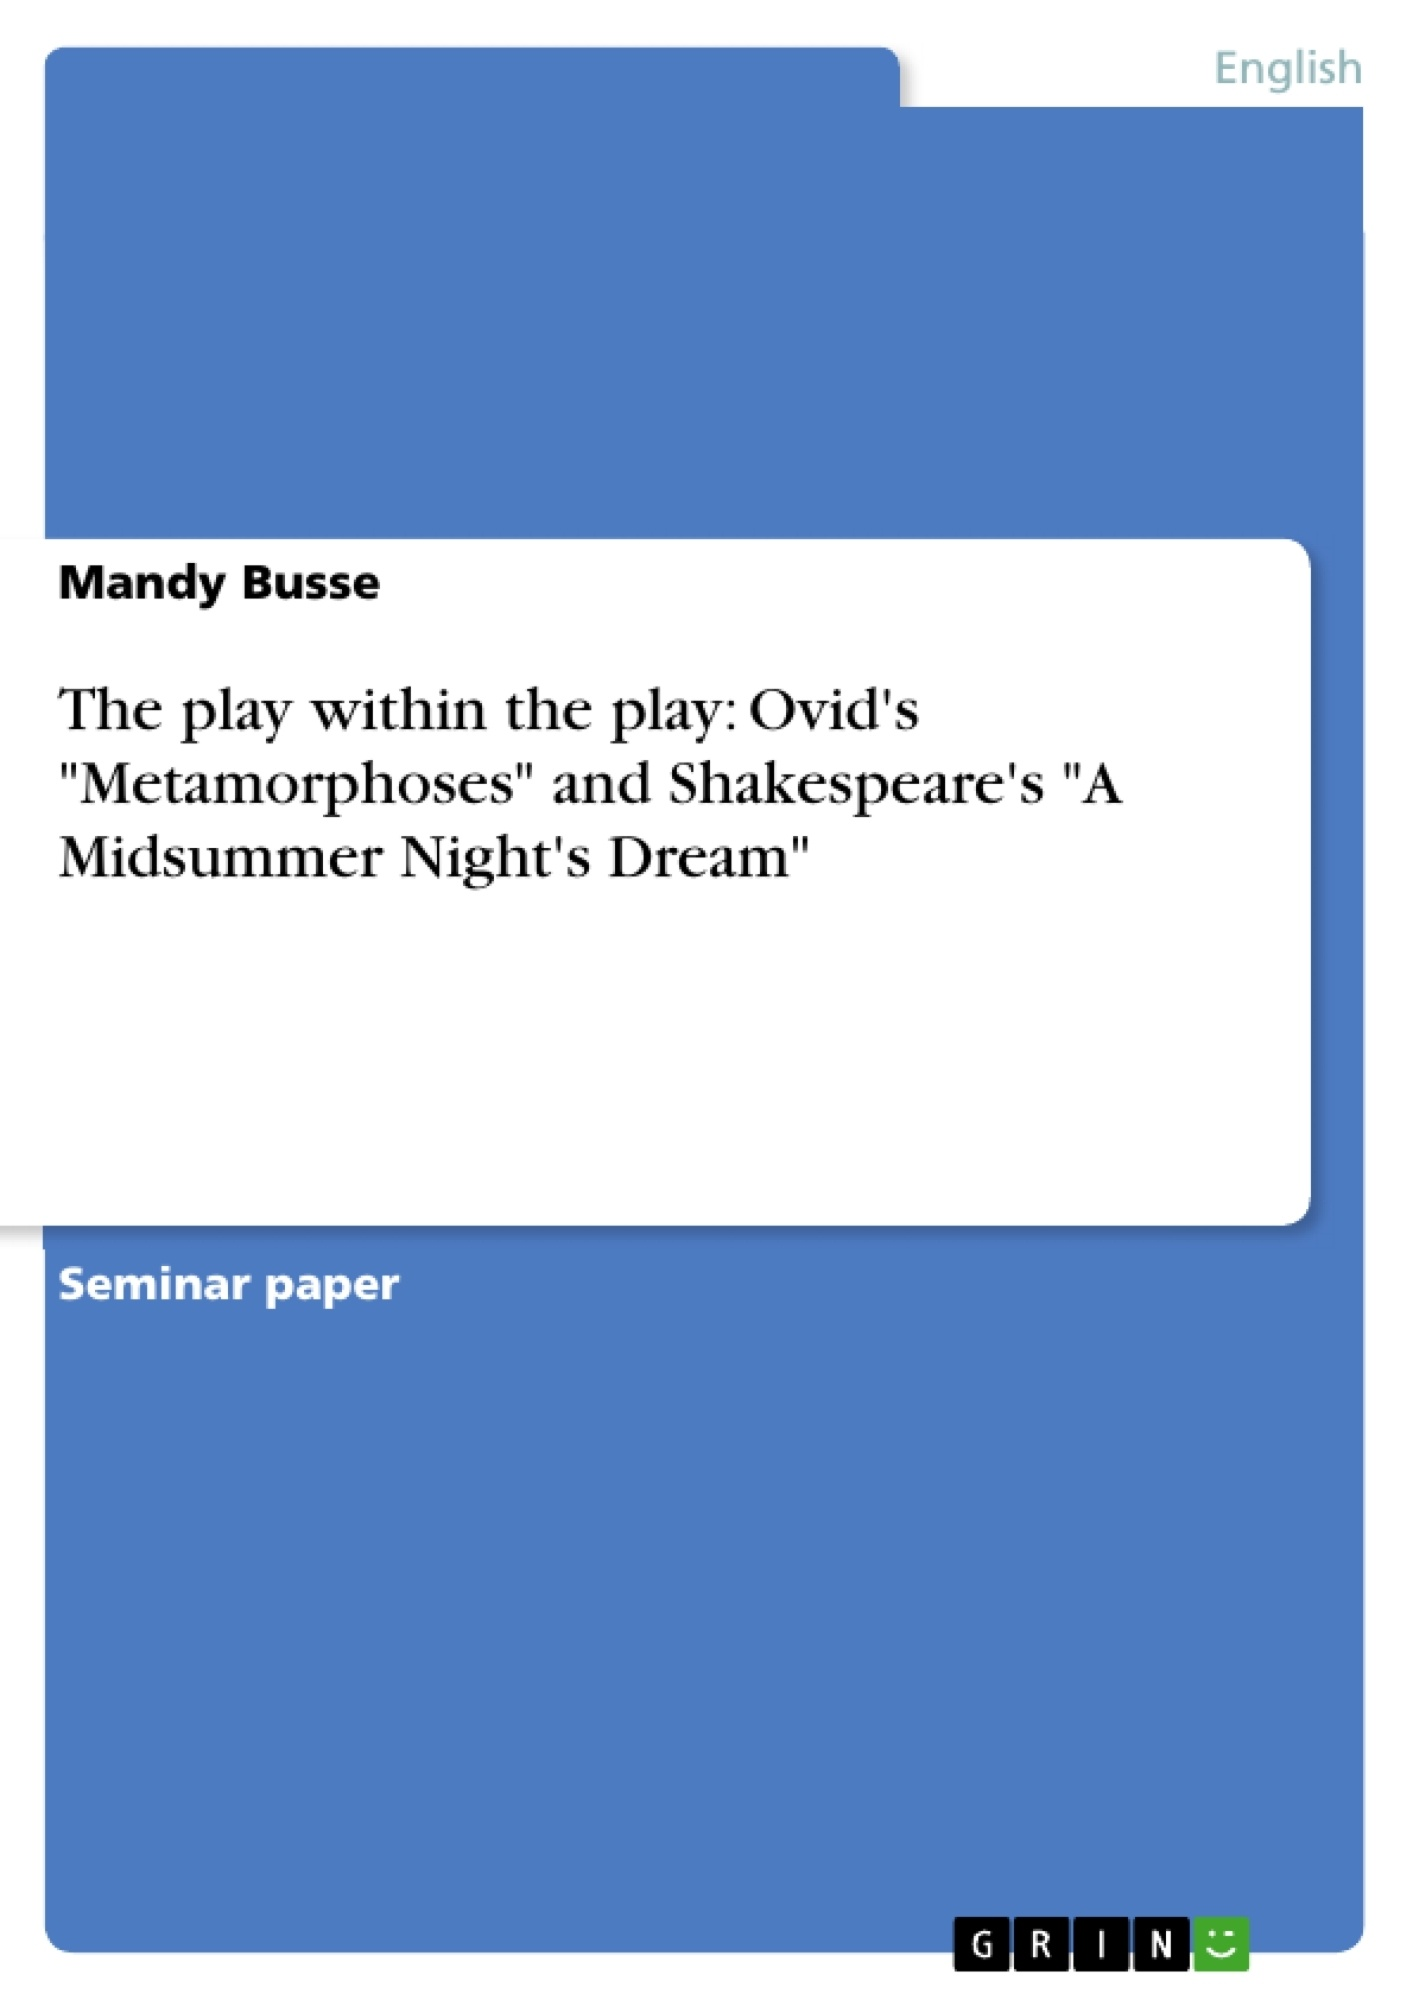 analysis of metamorphoses Metamorphoses (9666–797), ovid tells the tale of iphis, a girl raised as a boy   my analysis has demonstrated that the iphis story is not only about the.